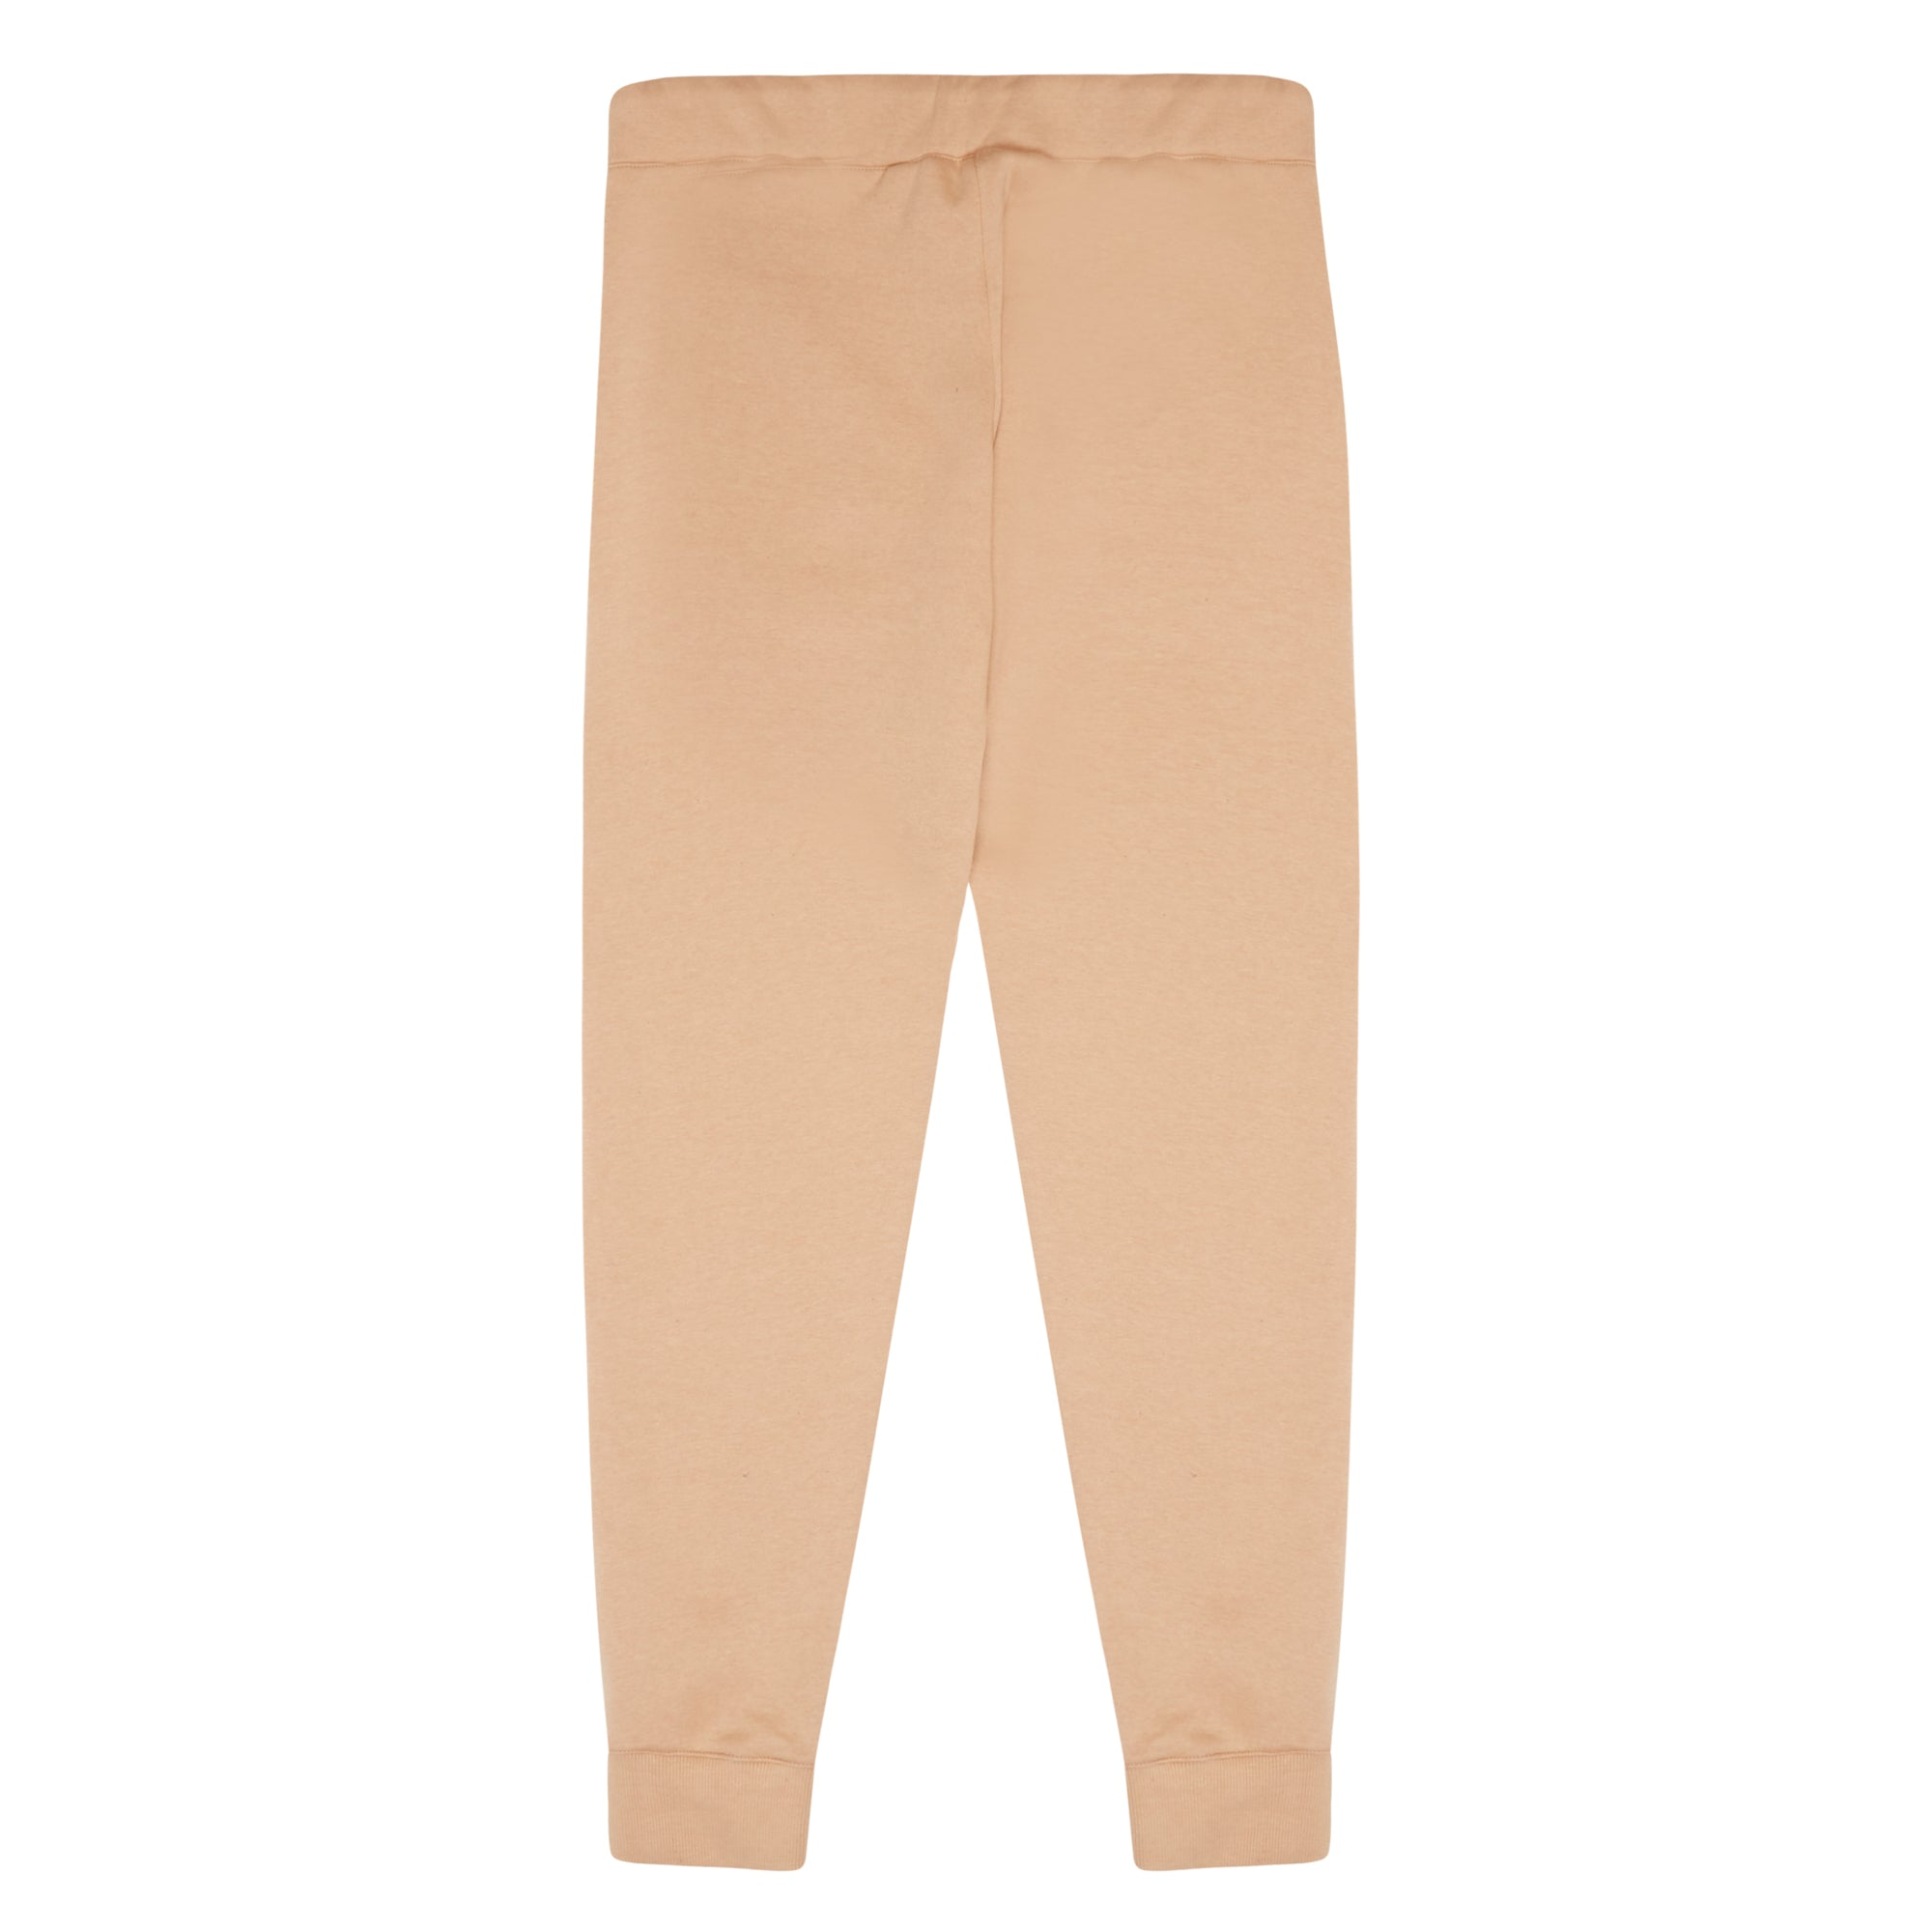 1FIGURES - Camel Brown Sweatpants